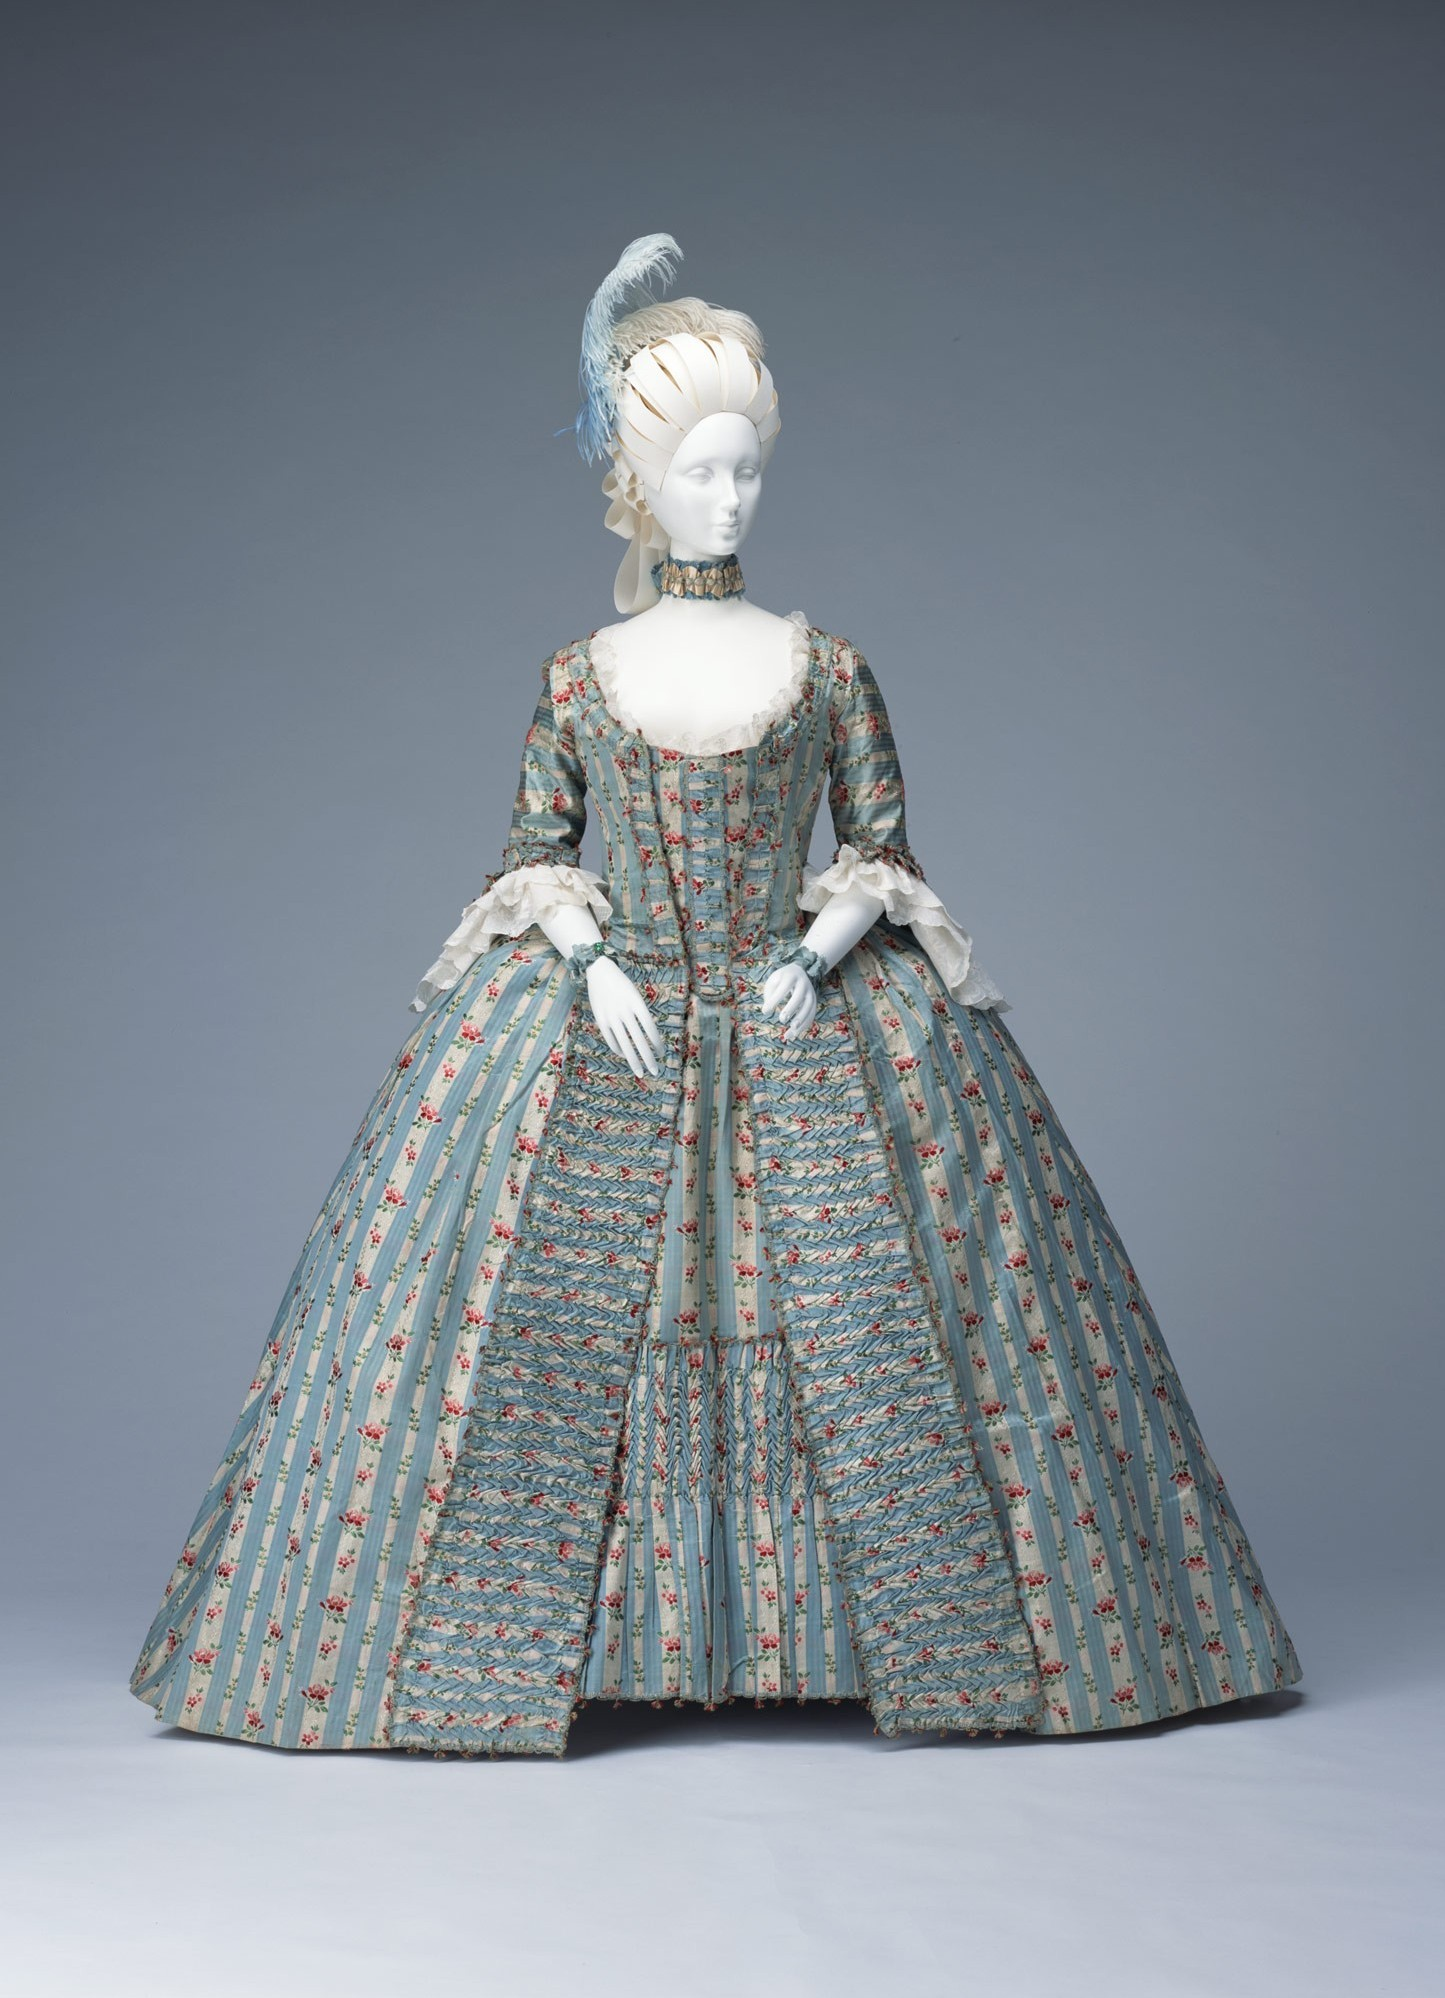 The Hair at the 18th Century - Revolution, Titles, and TitleMax 1800s fashion in france